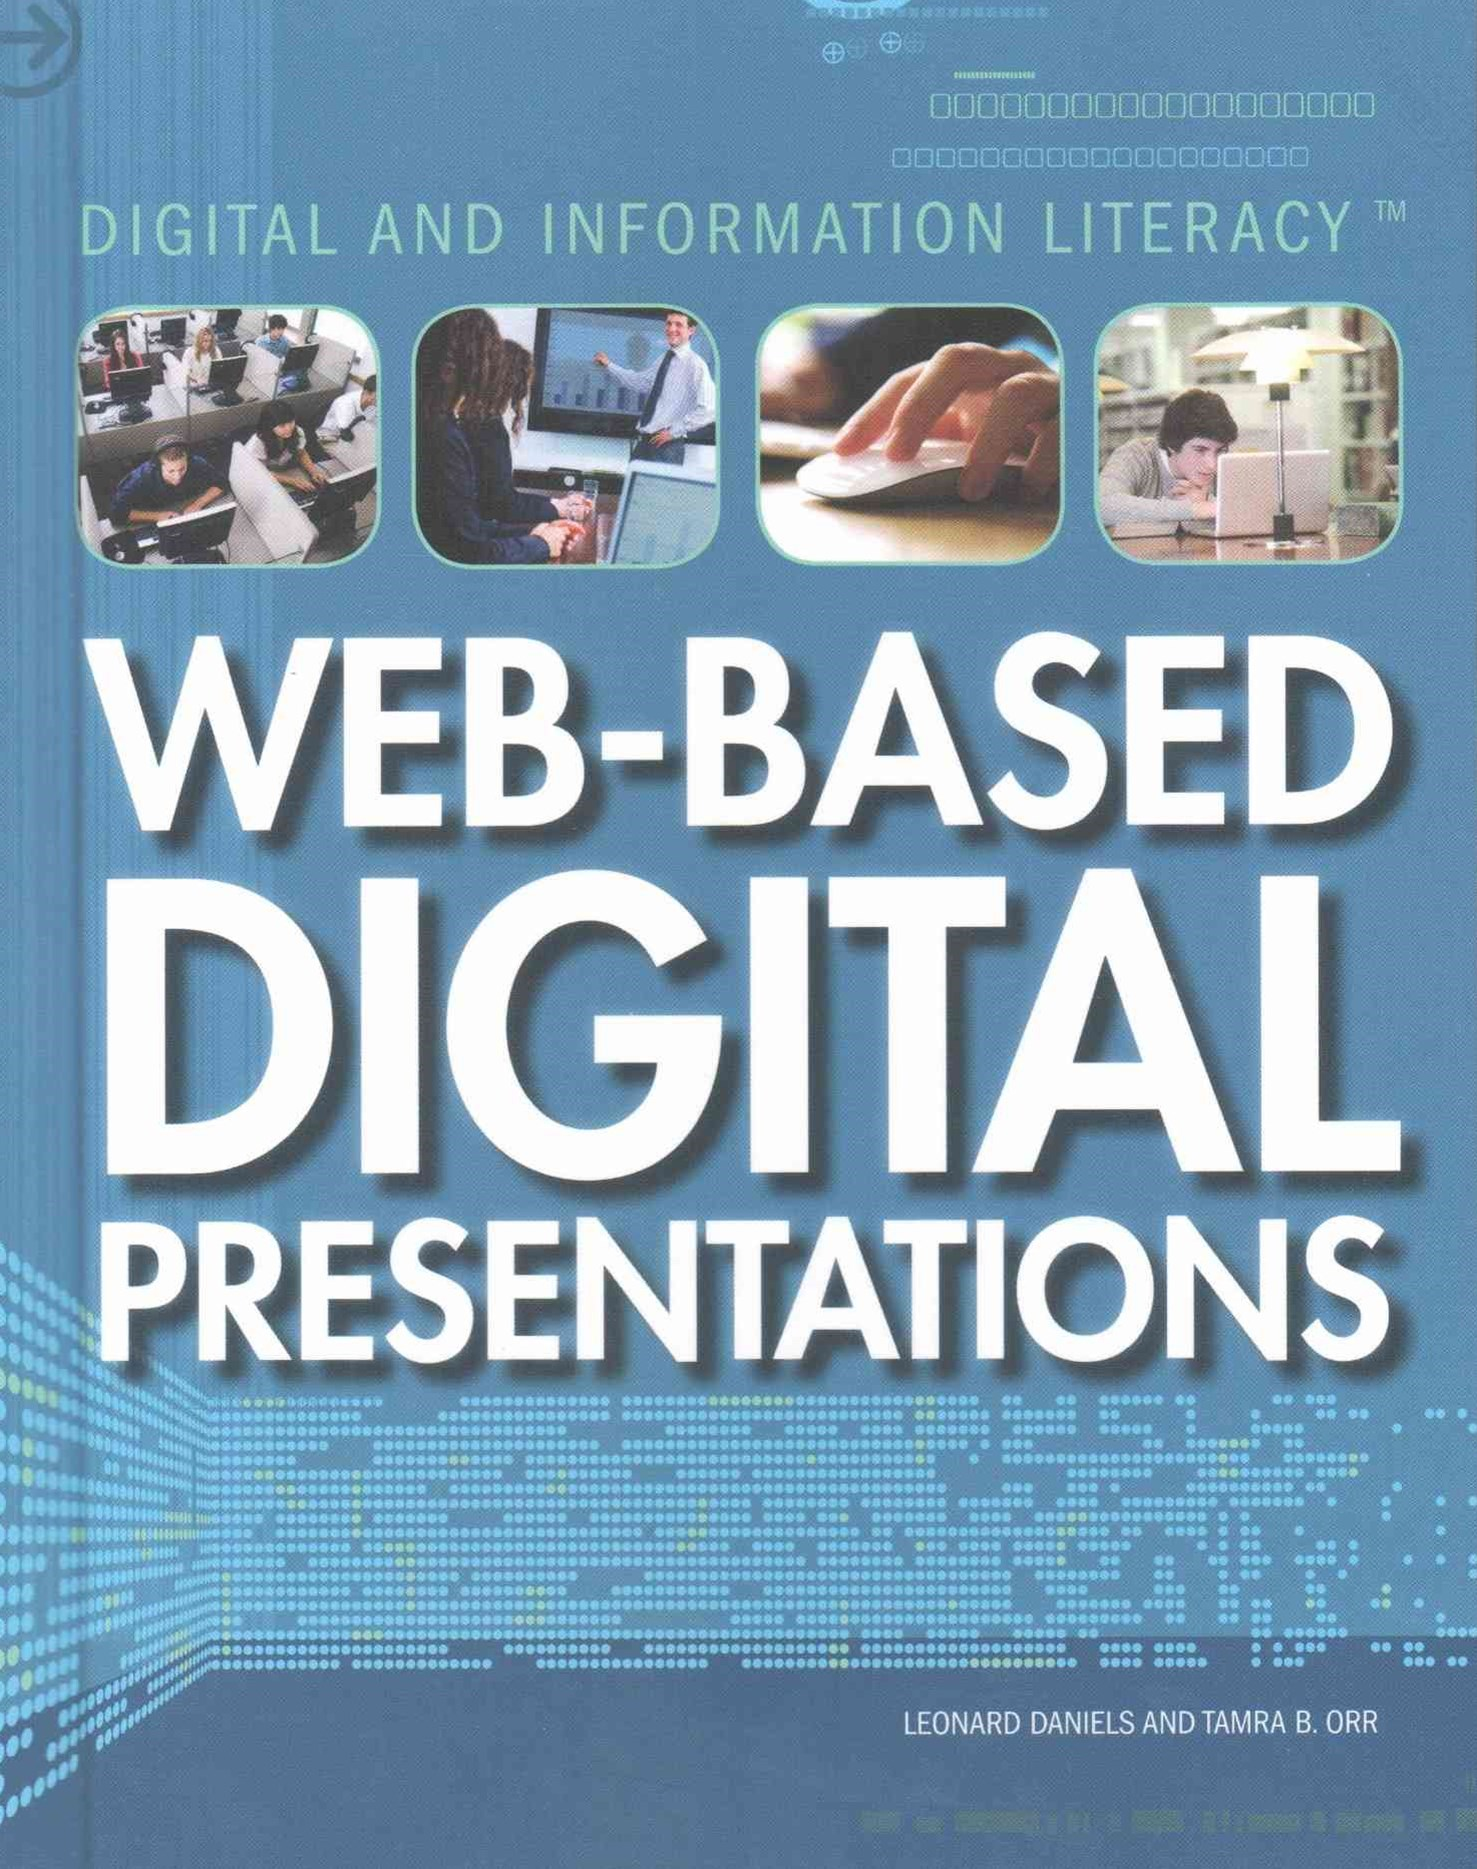 Web-Based Digital Presentations